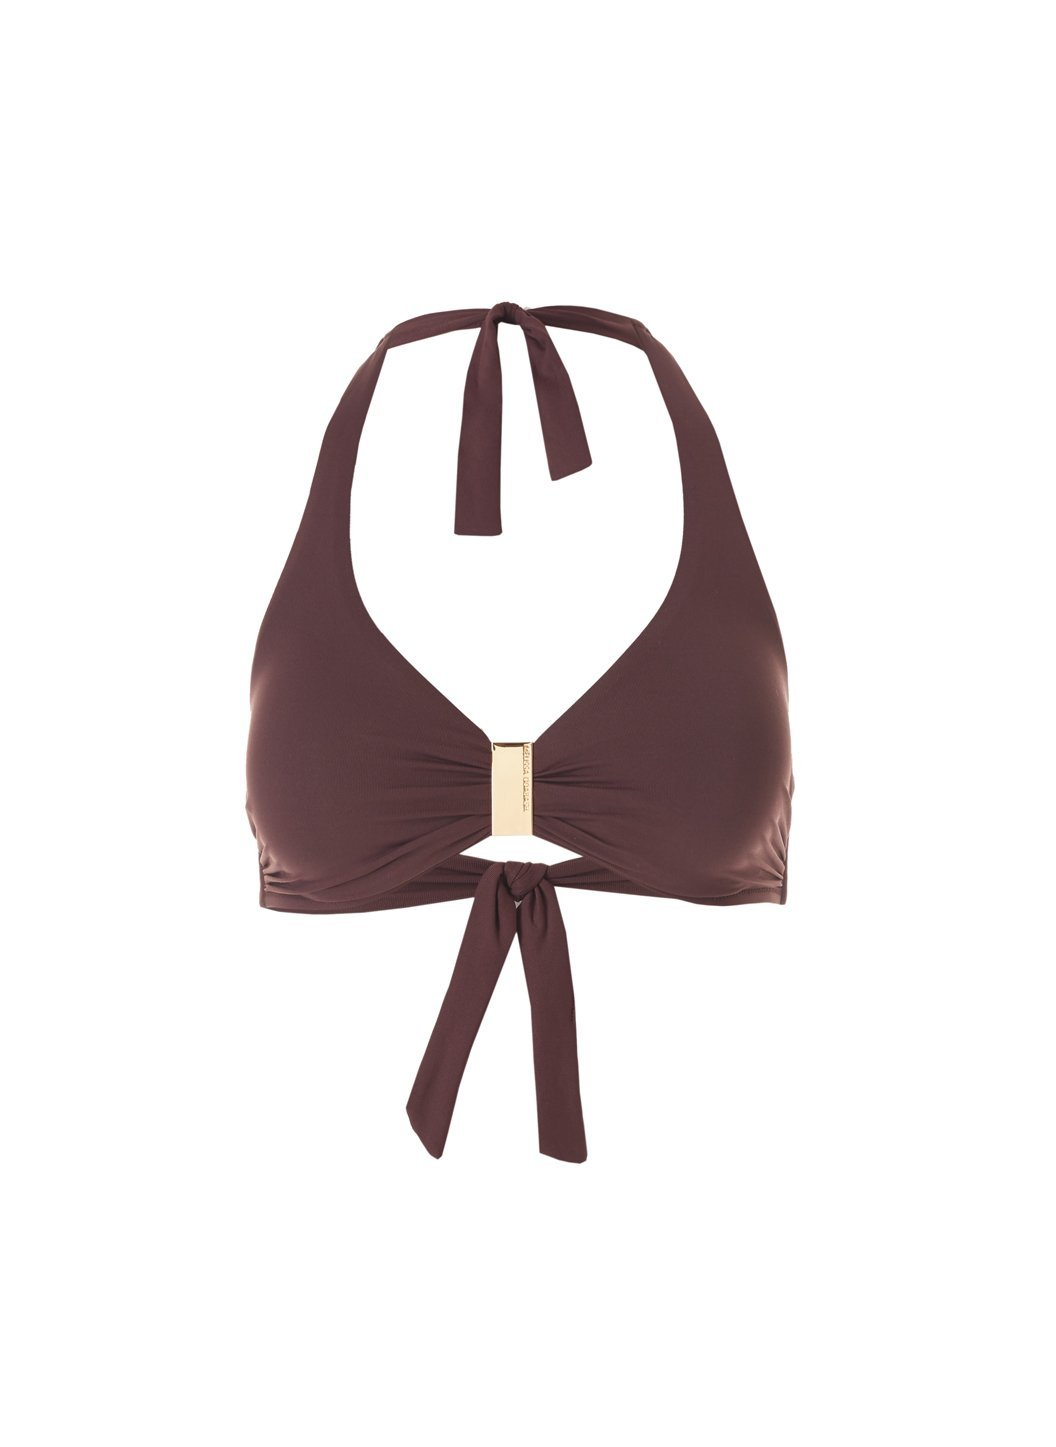 Exclusive Provence Walnut Halterneck Supportive Bikini Top